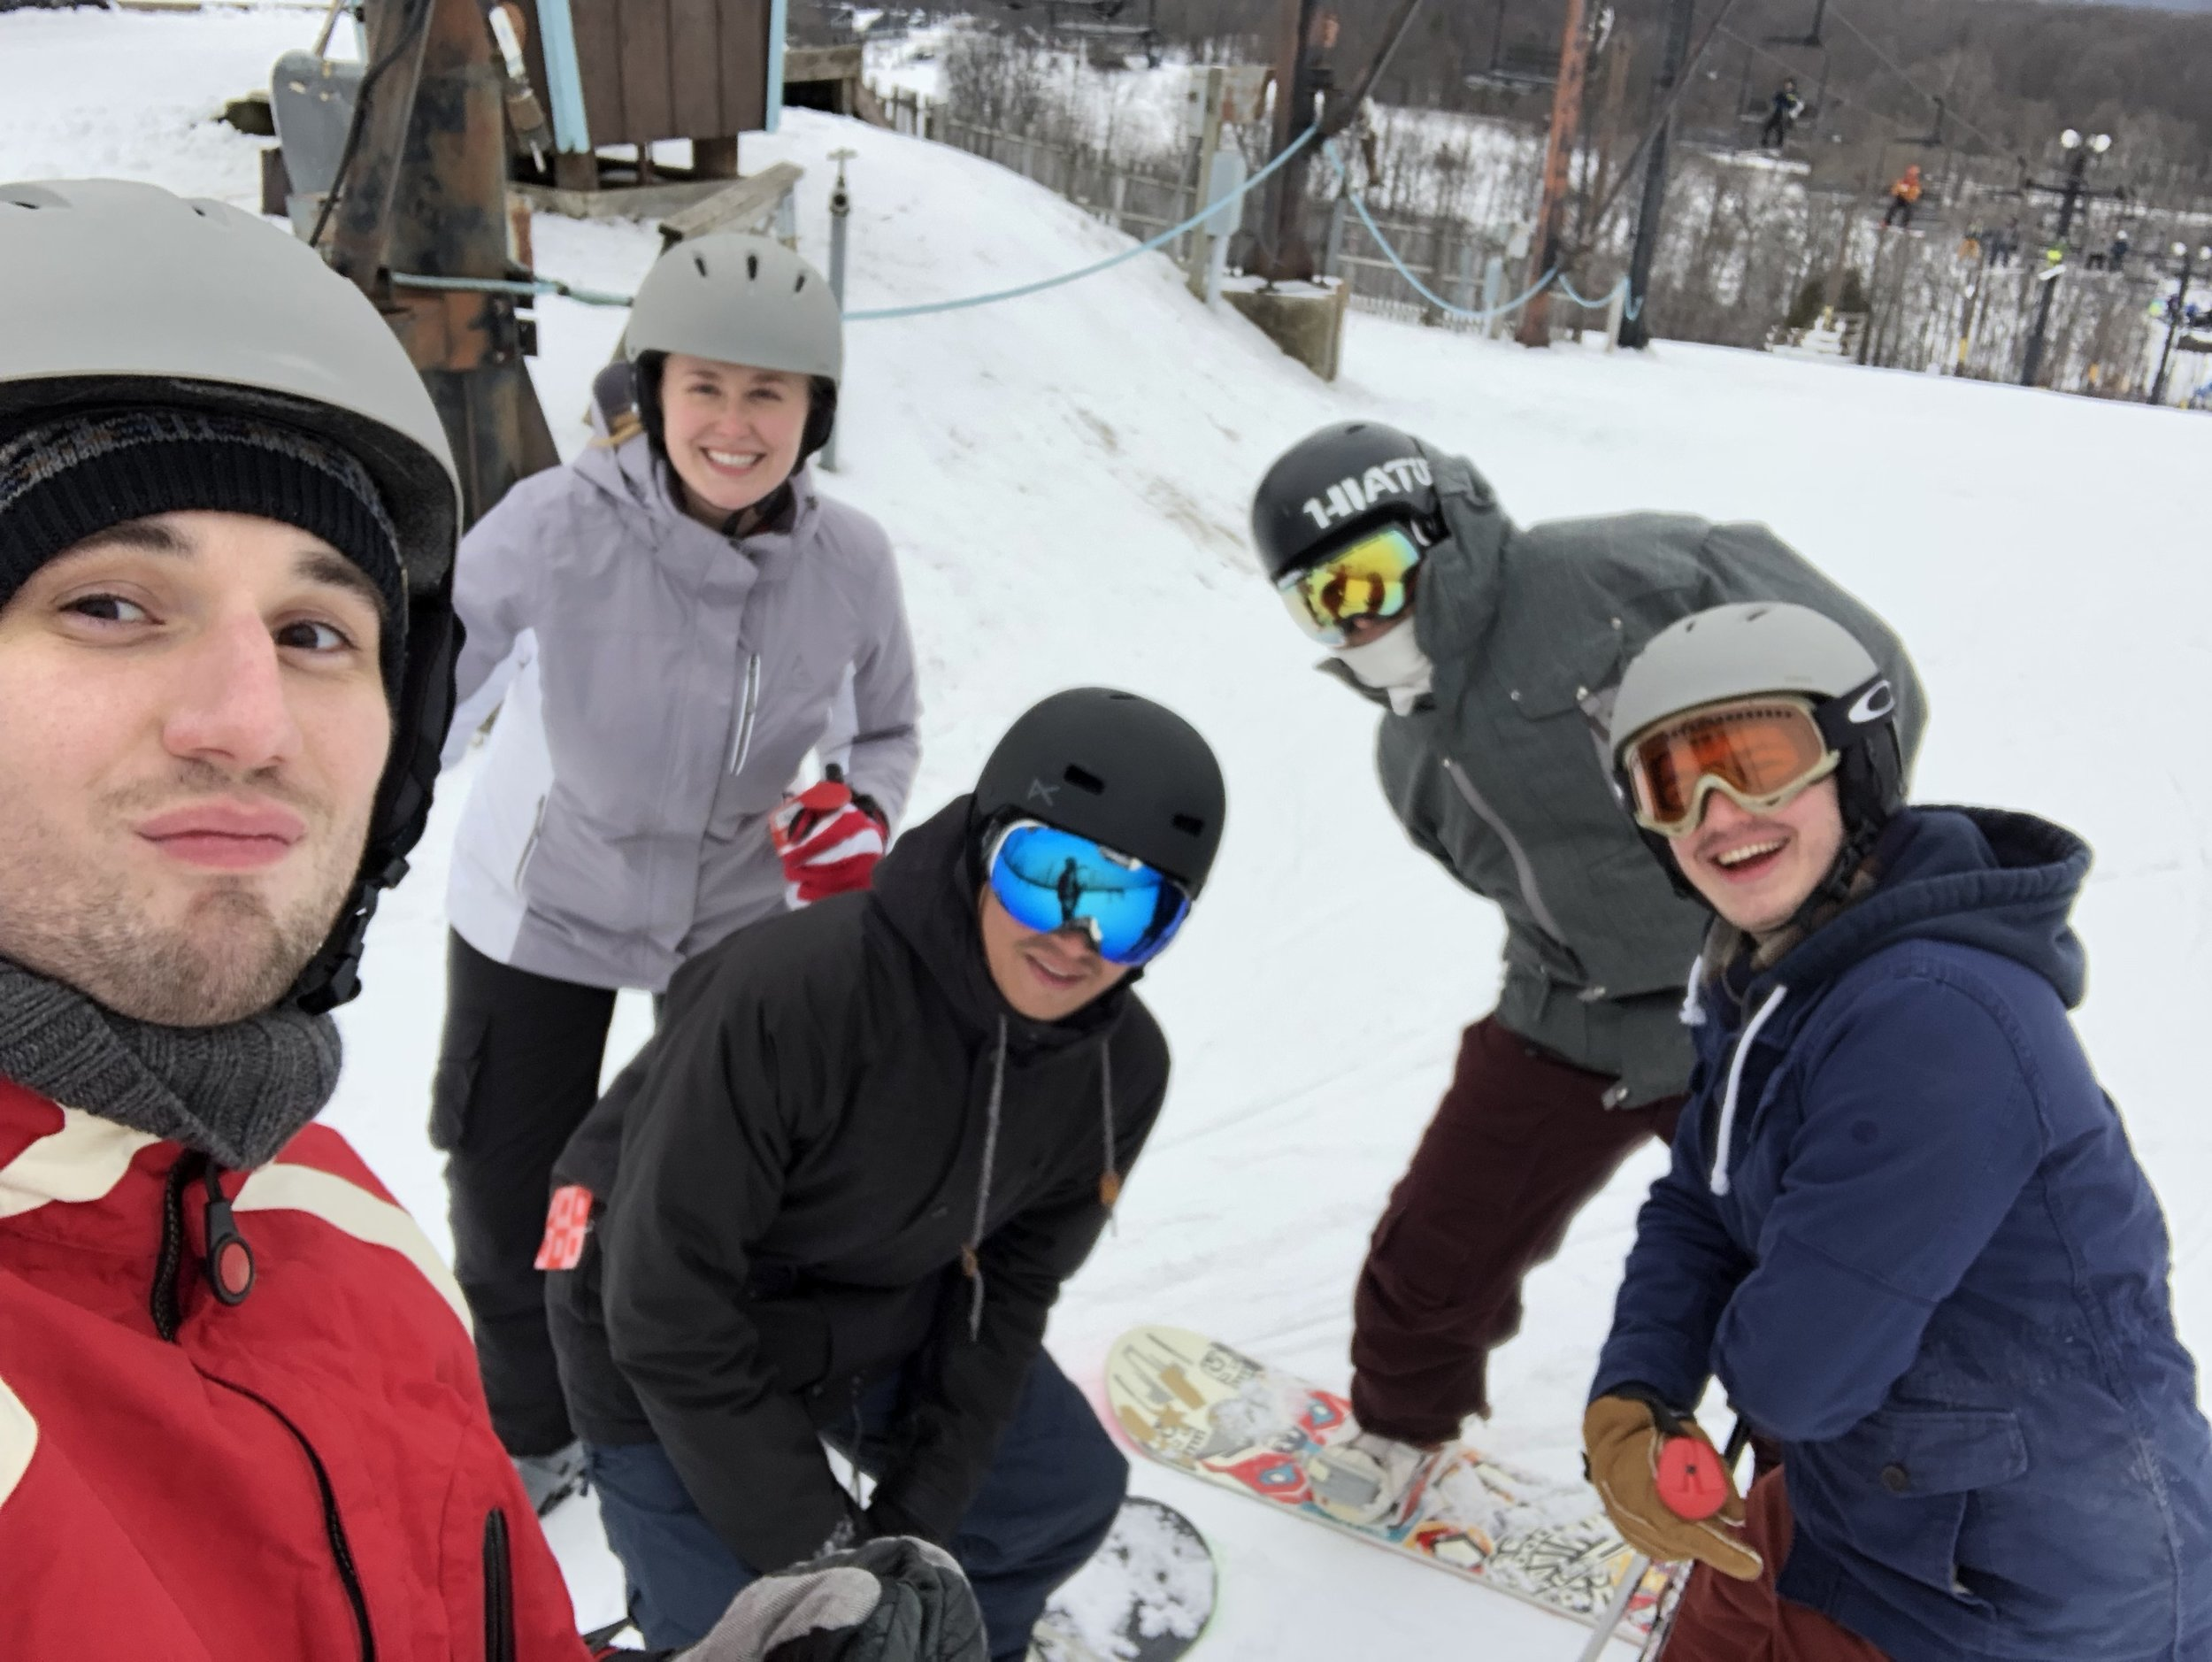 SLH SKI OUTING  The team enjoyed a great ski trip at Swiss Valley. No broken bones!